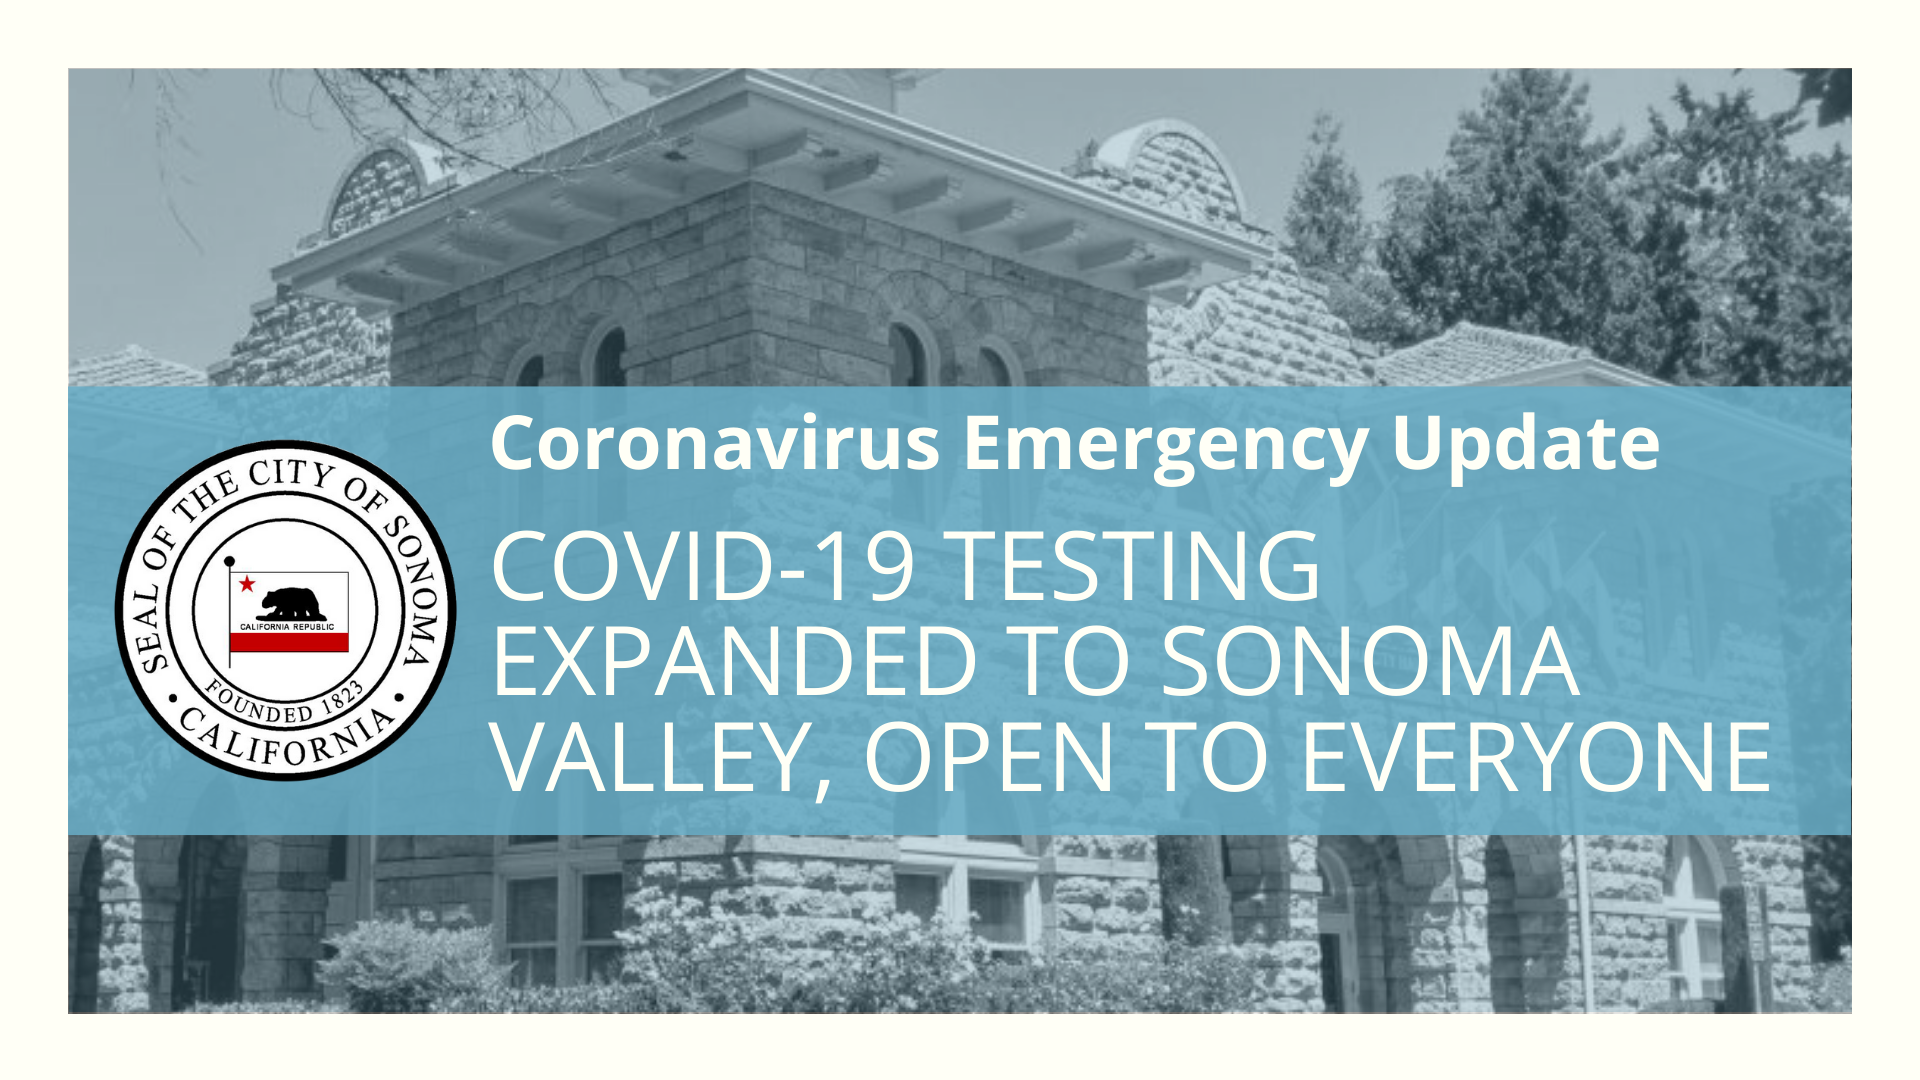 COVID-19 TESTING EXPANDS TO SONOMA VALLEY, OPEN TO EVERYONE